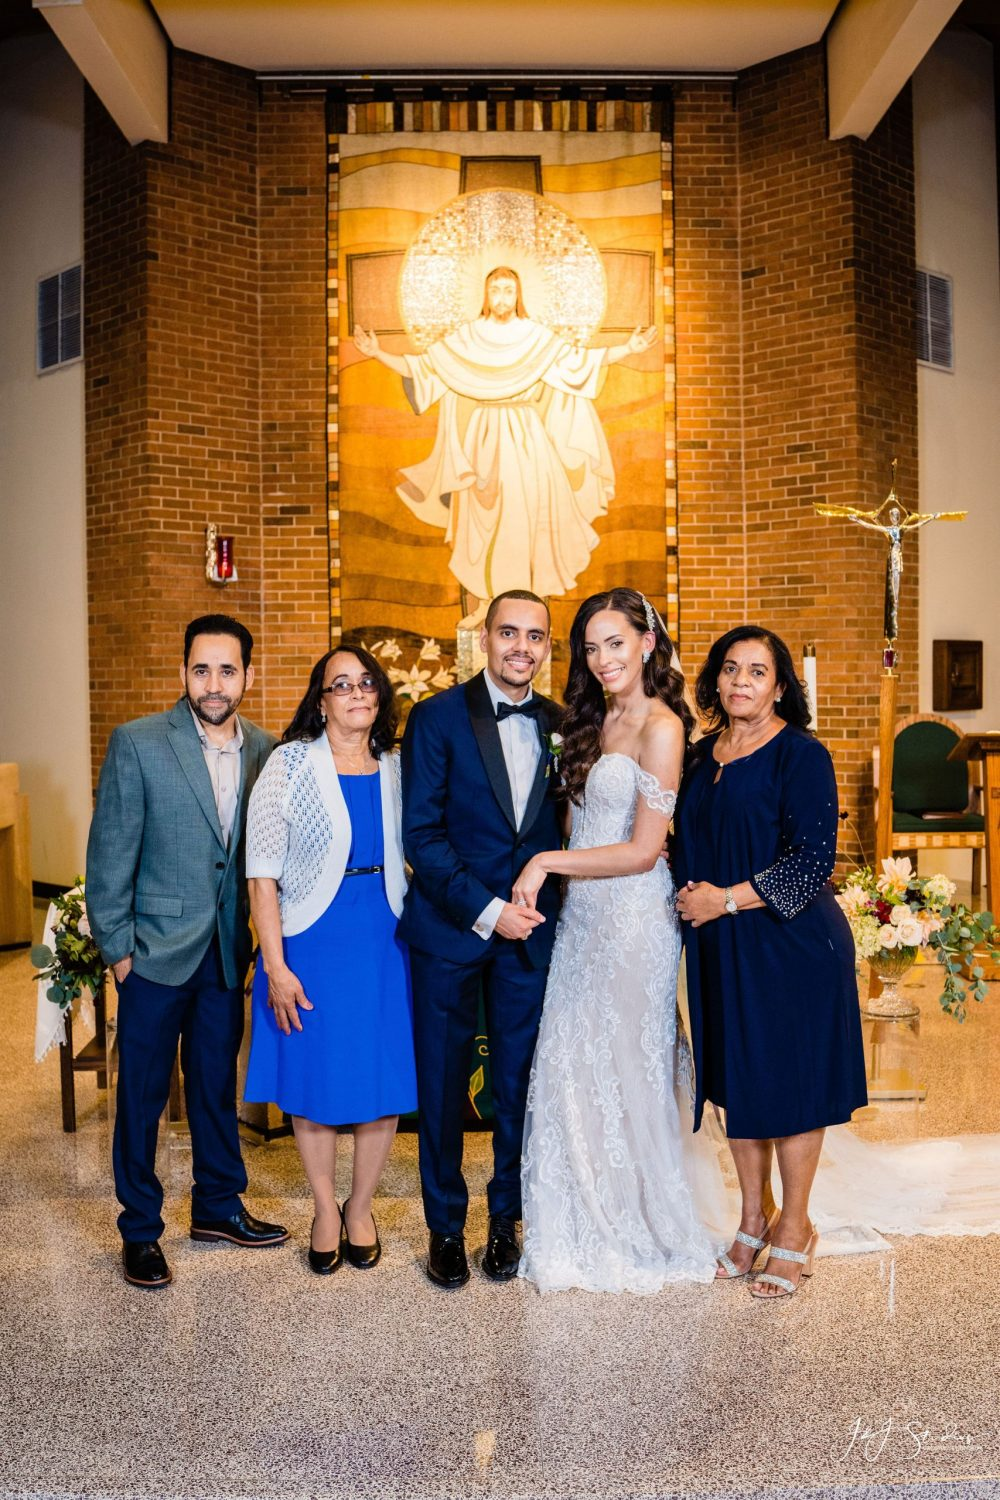 Bride and groom with family and friends